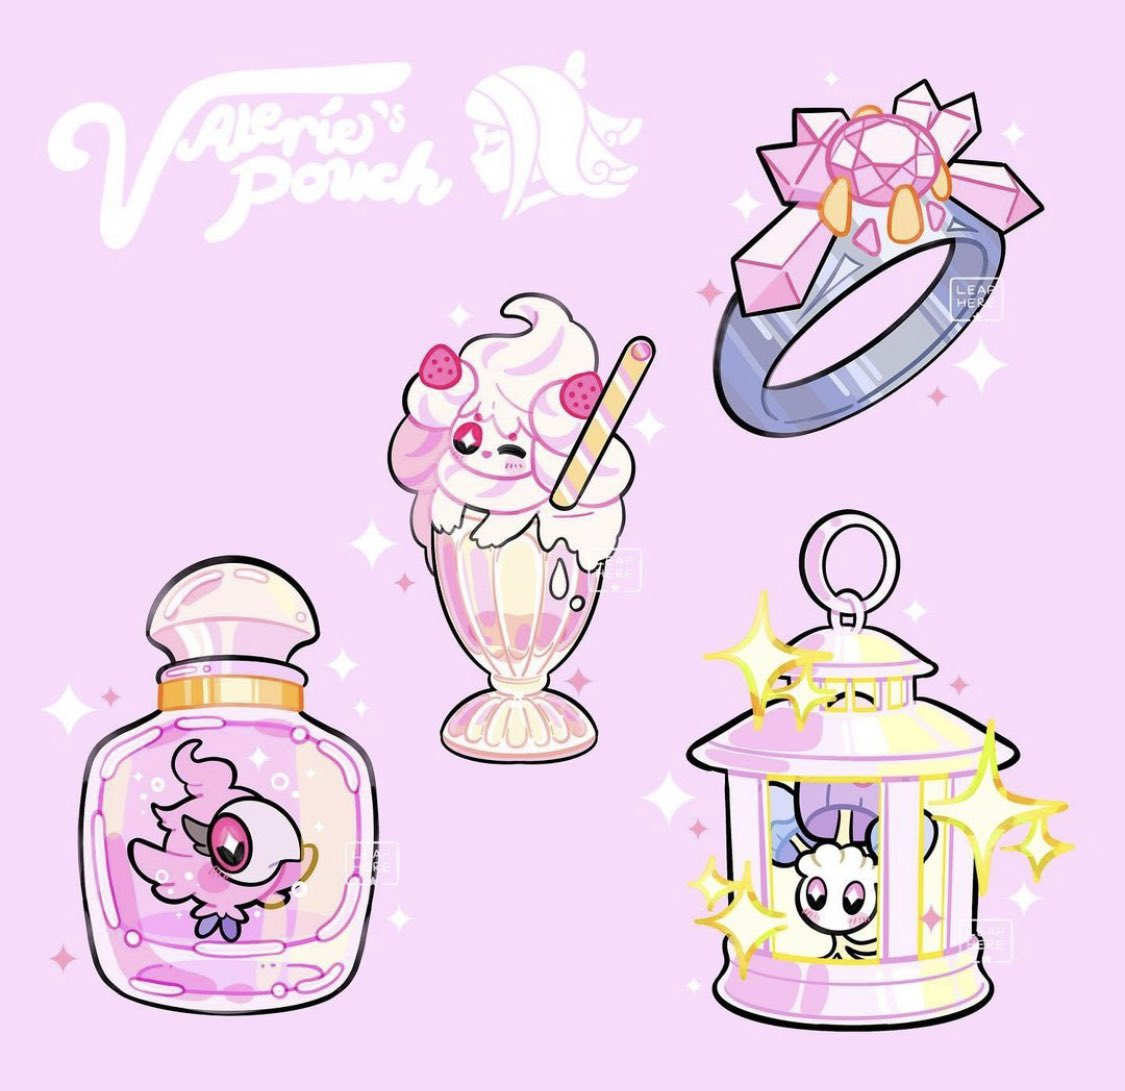 alcremie alcremie_(strawberry_sweet) artist_name bottle commentary diancie drinking_straw gem gen_6_pokemon gen_7_pokemon gen_8_pokemon glass jewelry lantern mythical_pokemon pink_background pokemon pokemon_(creature) pokemon_(game) pokemon_xy ring shiinotic simple_background sparkle spritzee valerie_(pokemon) watermark yamato-leaphere